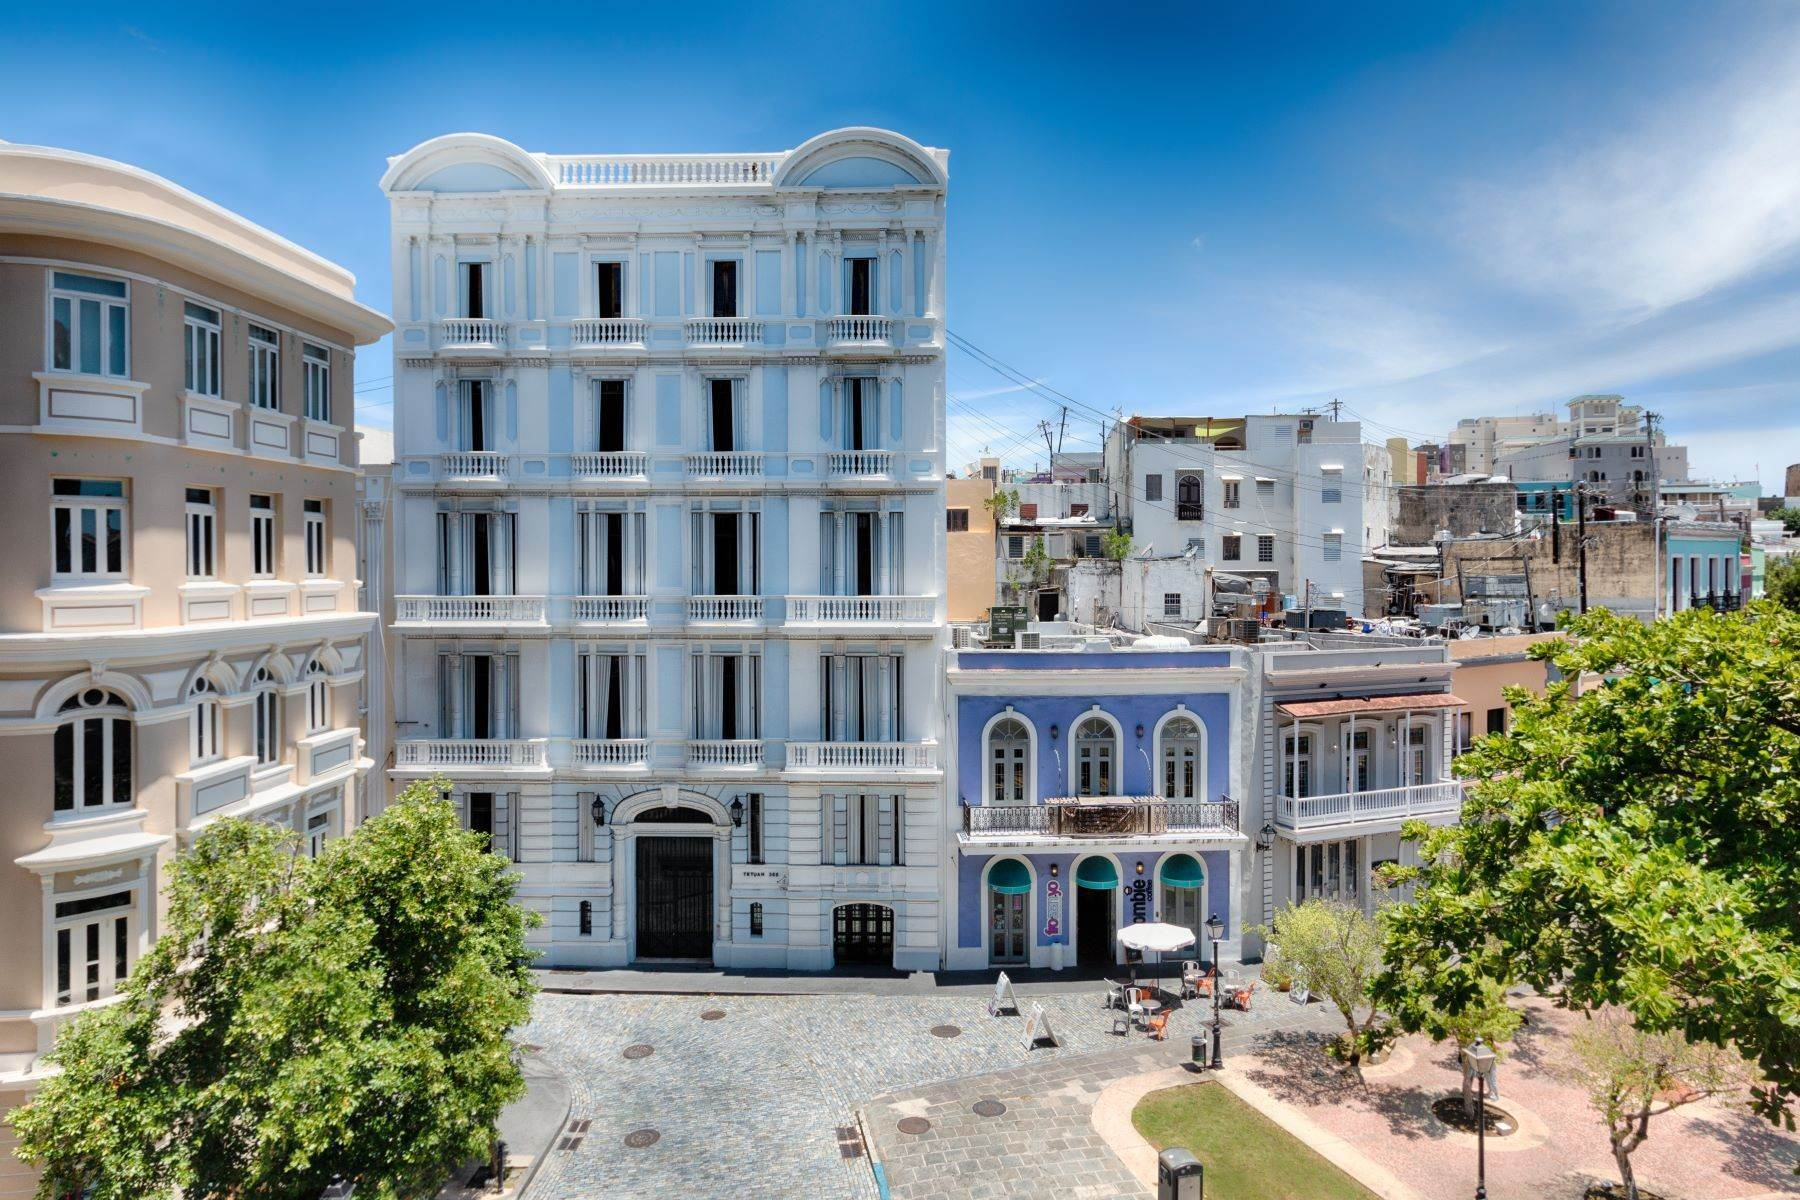 townhouses for Sale at Tetuan Street Historic Artistry in Old San Juan 353-355 Tetuan Street & 352 Fortaleza Street Old San Juan, 00901 Puerto Rico